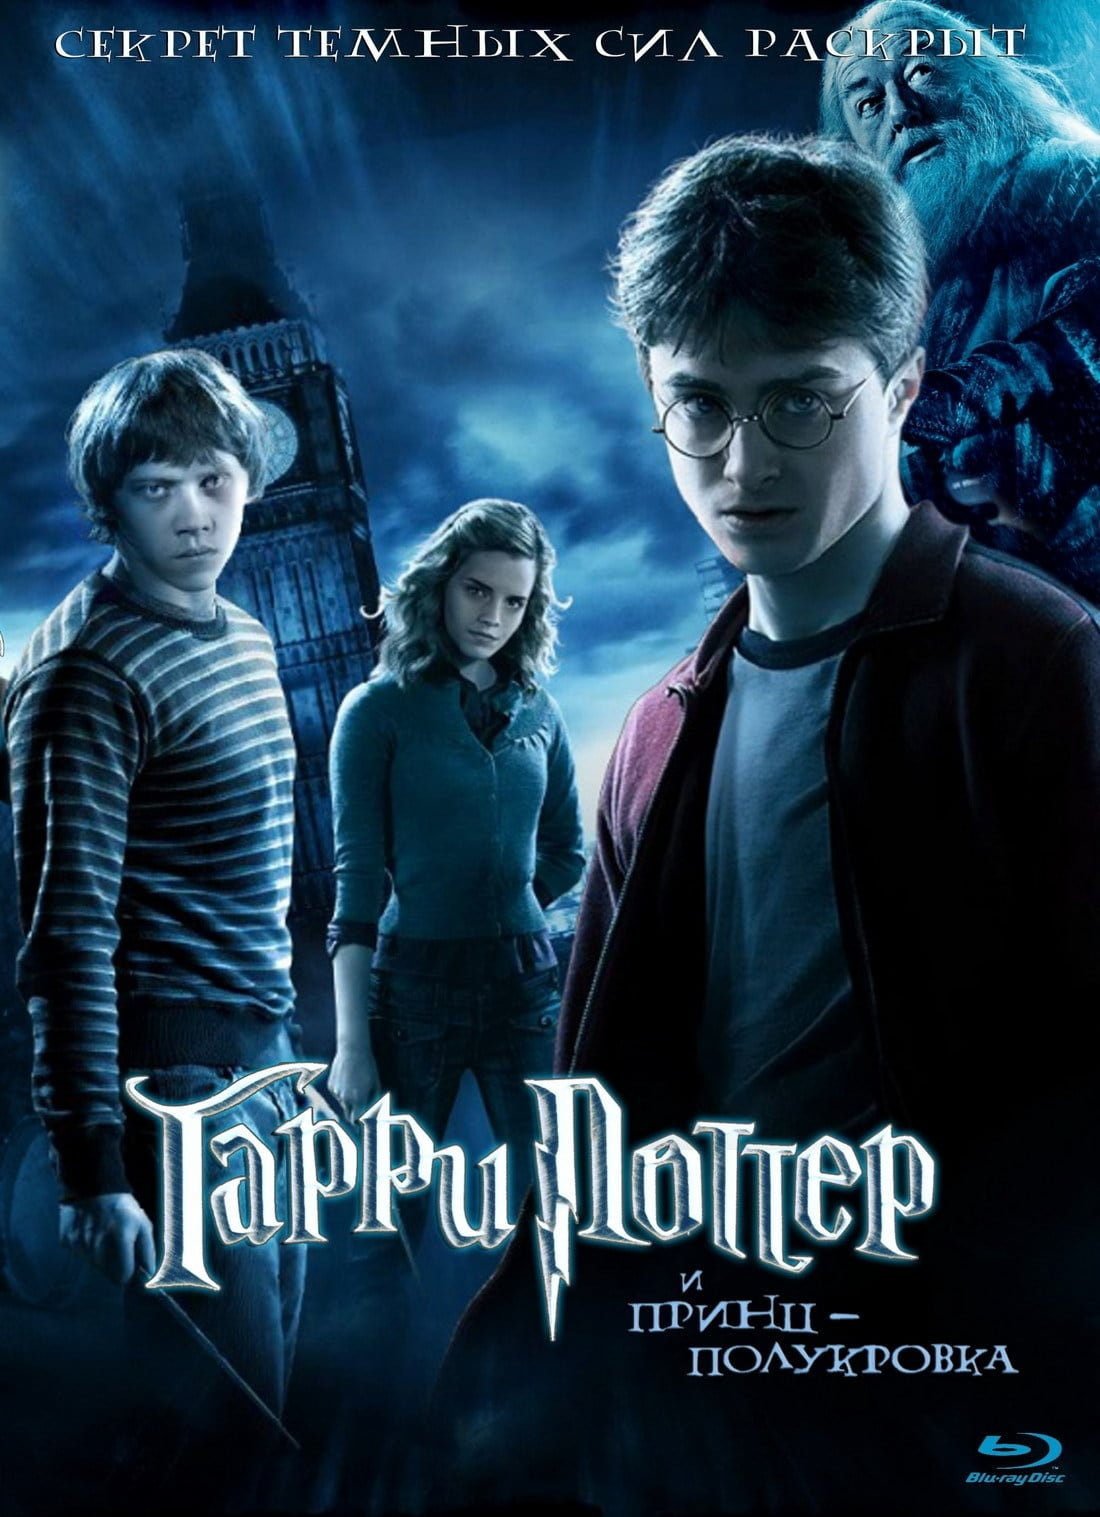 harry potter 2 film complet en francais harry potter 2 film complet en francais apexwallpapers com. Black Bedroom Furniture Sets. Home Design Ideas